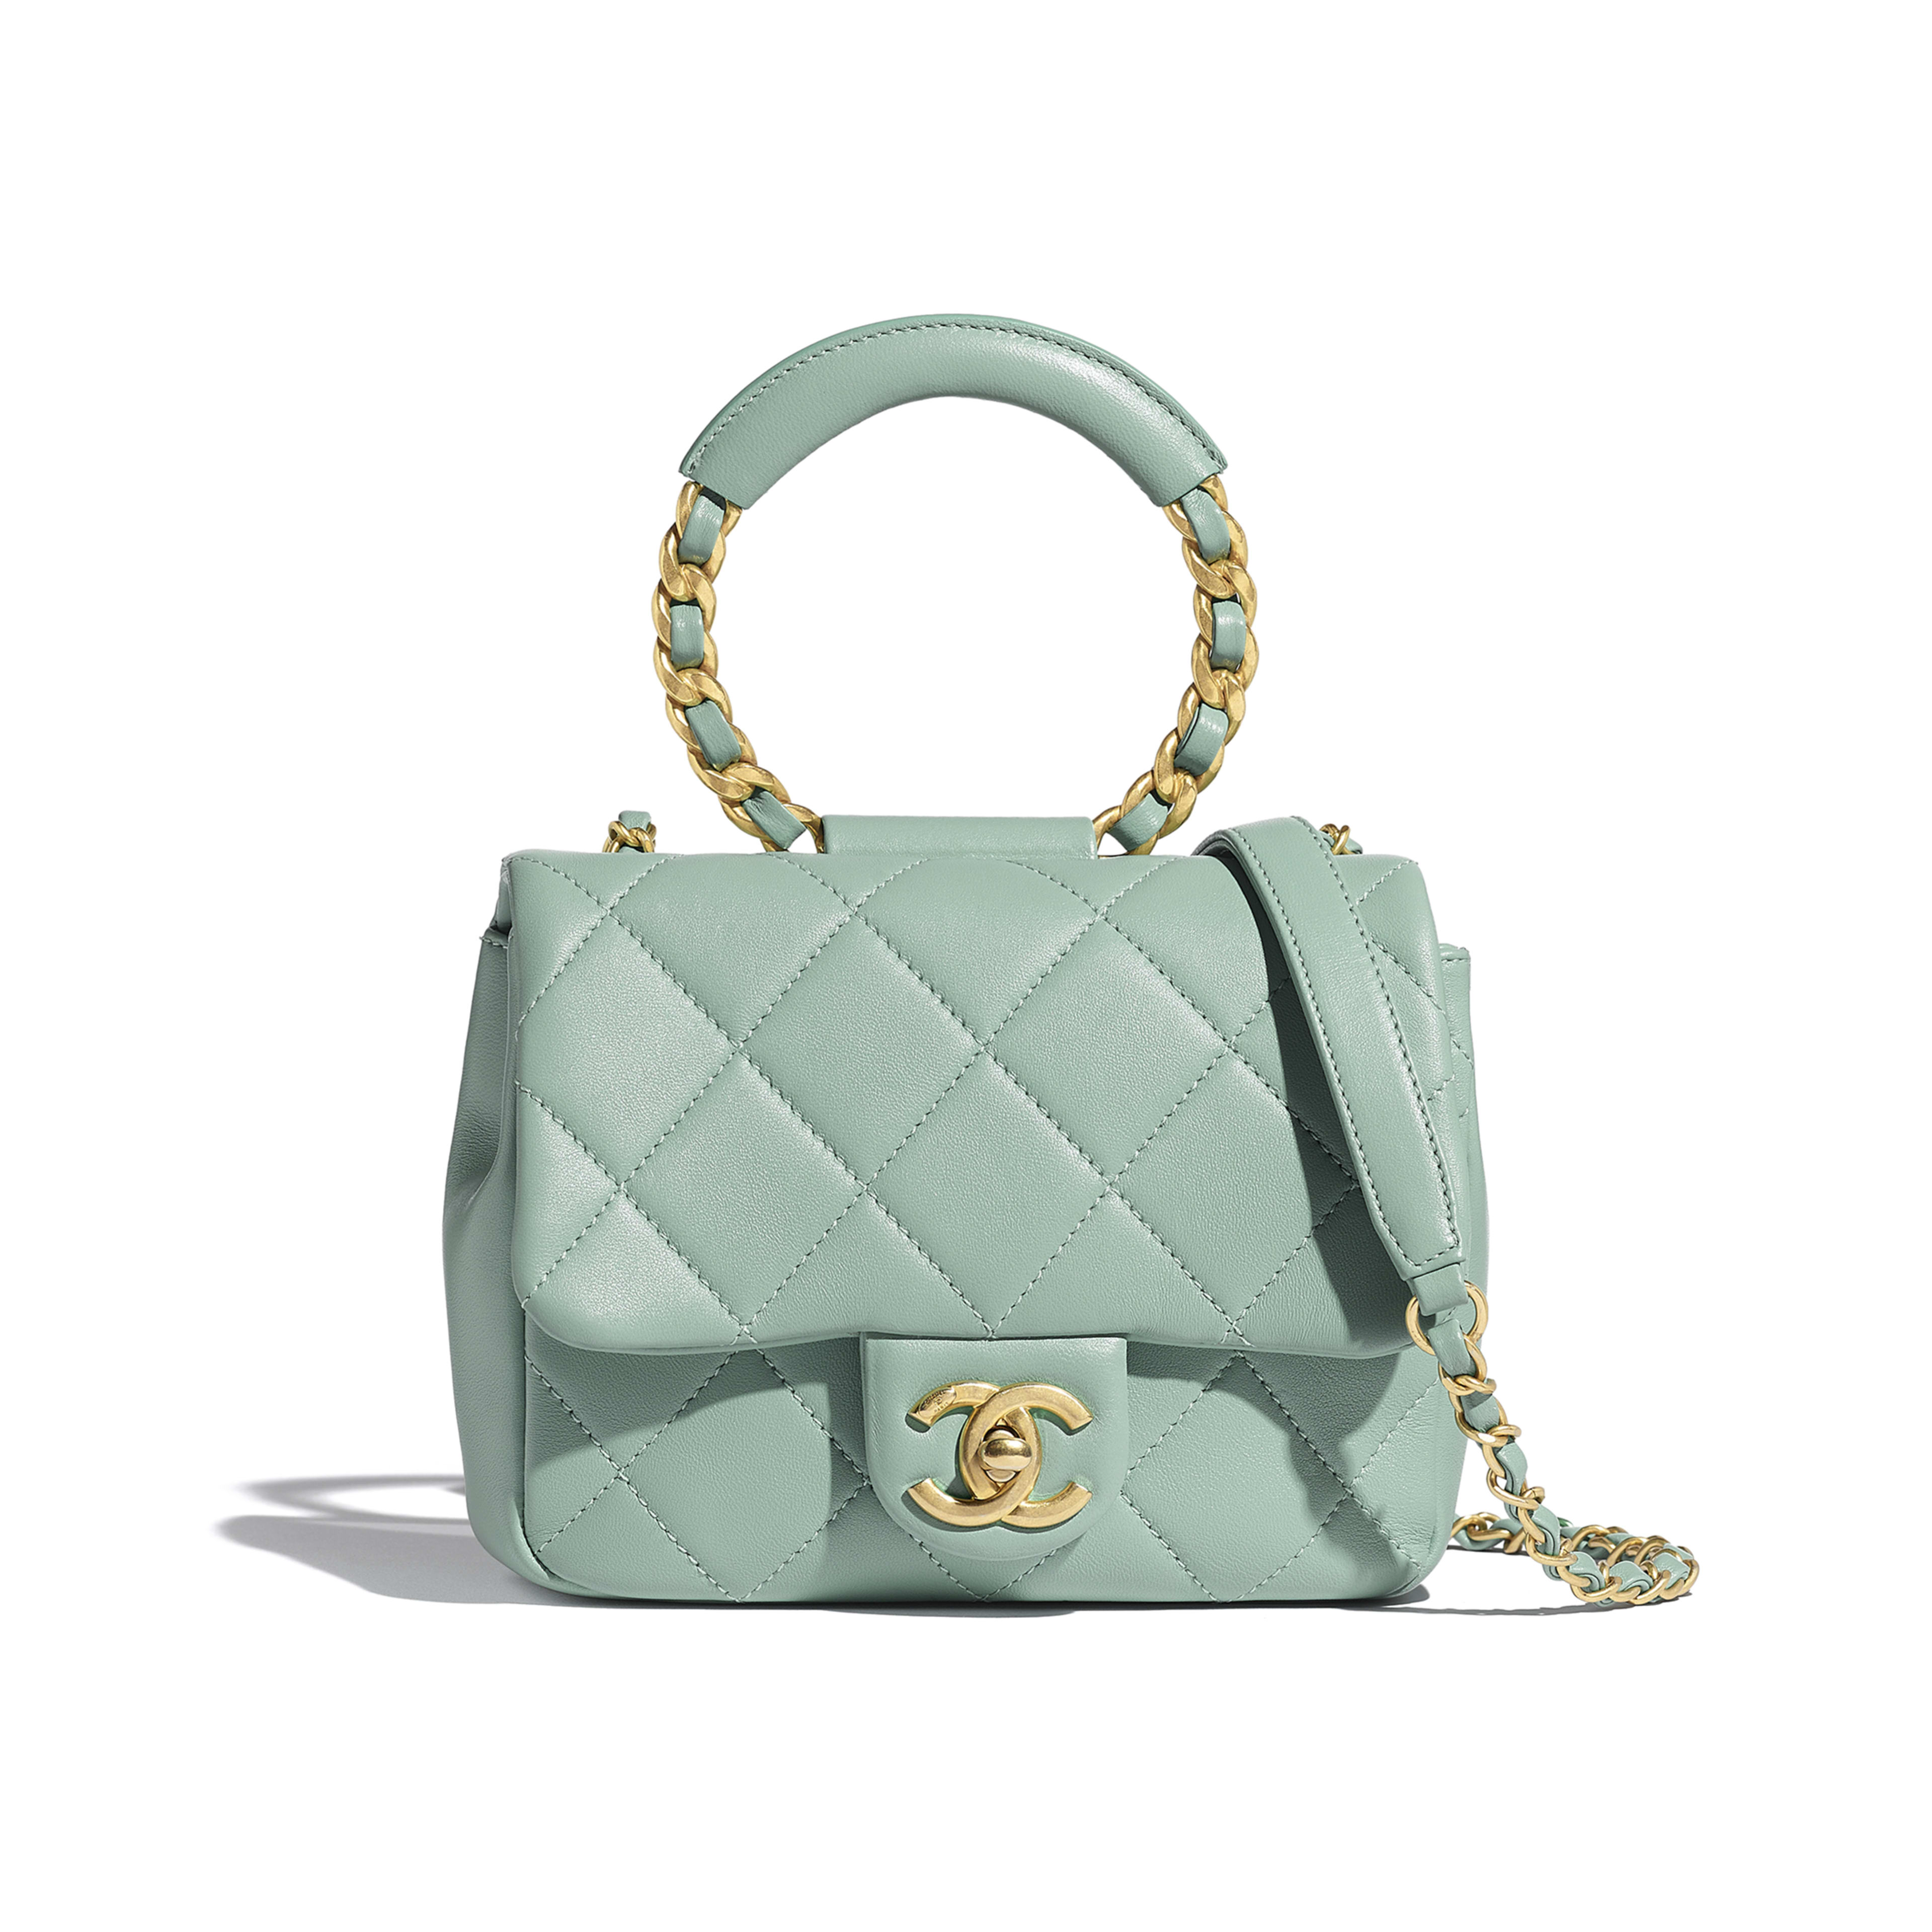 Small Flap Bag - Blue - Lambskin & Gold Metal  - Default view - see full sized version